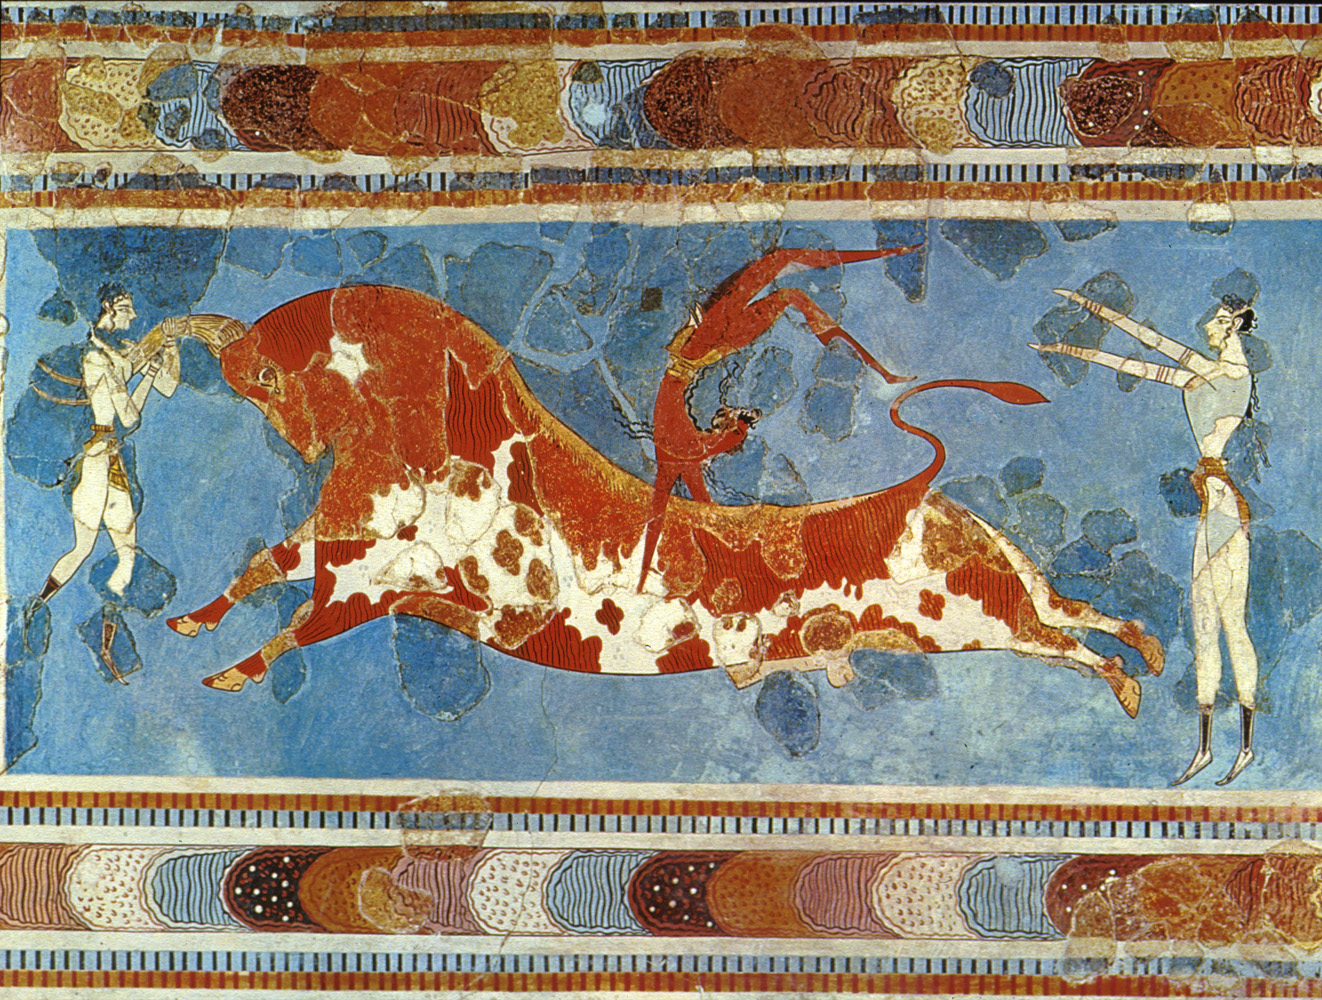 The dietary habits of Minoans that survive to this day